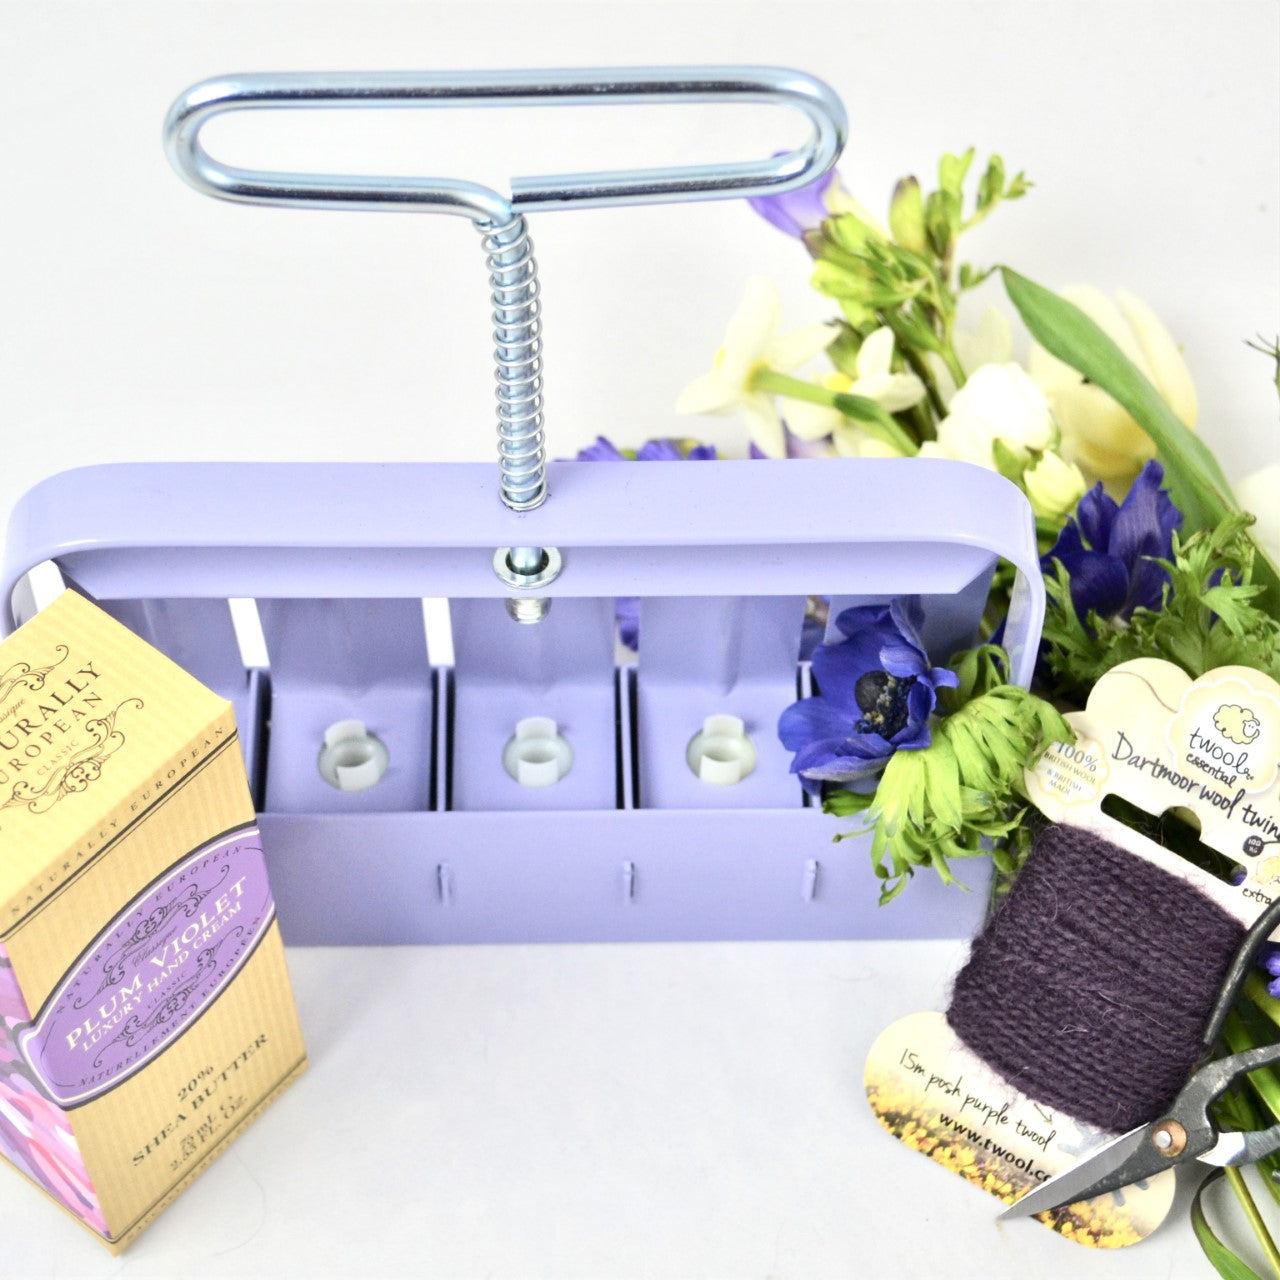 The Lilac Mini 5 Gift Set